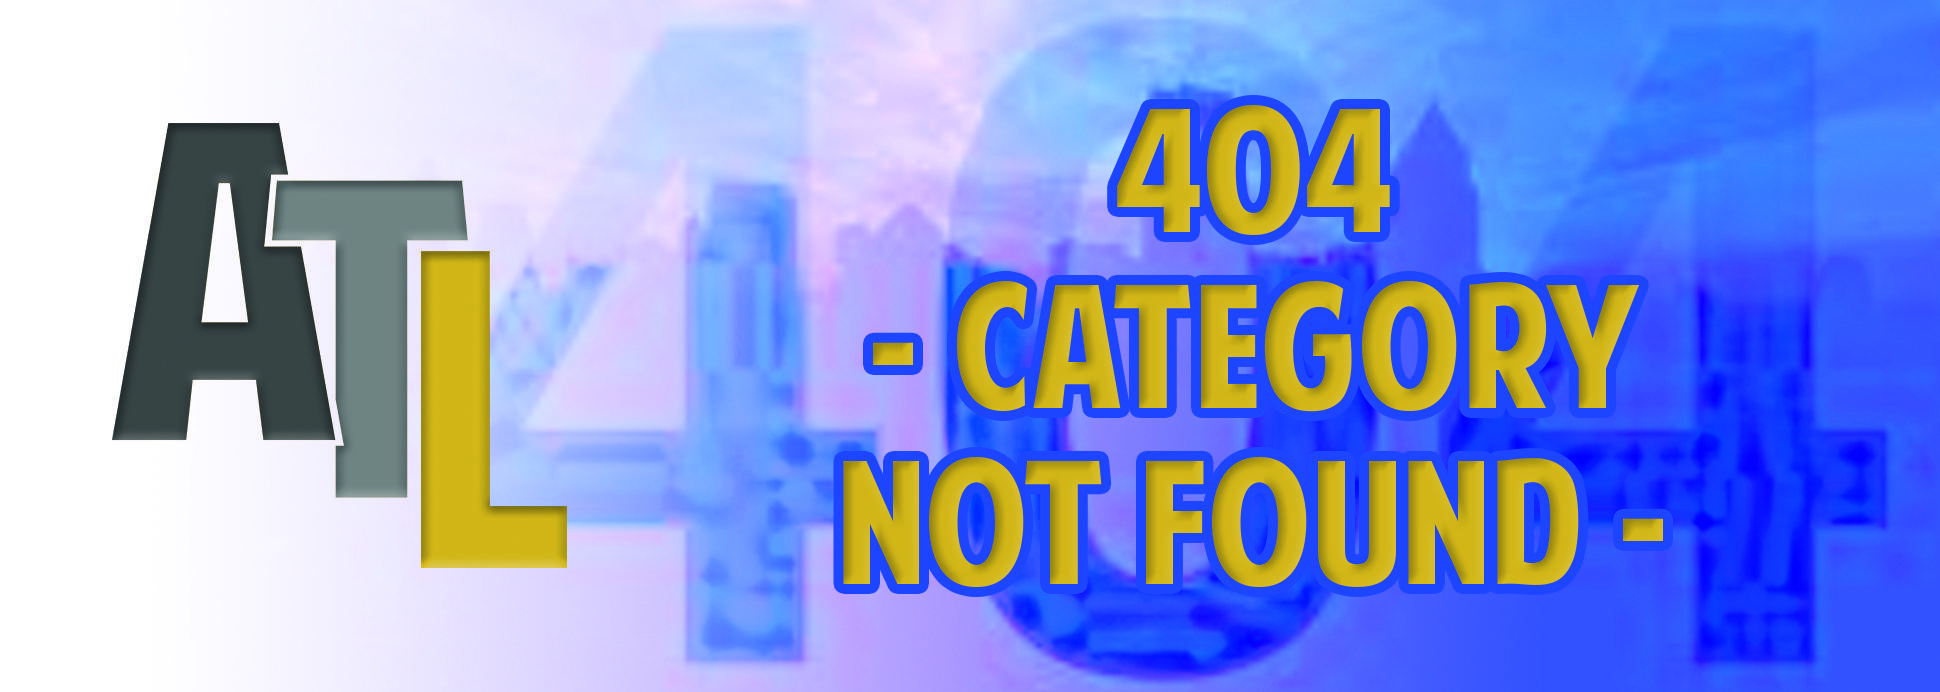 404 - Category Not Found